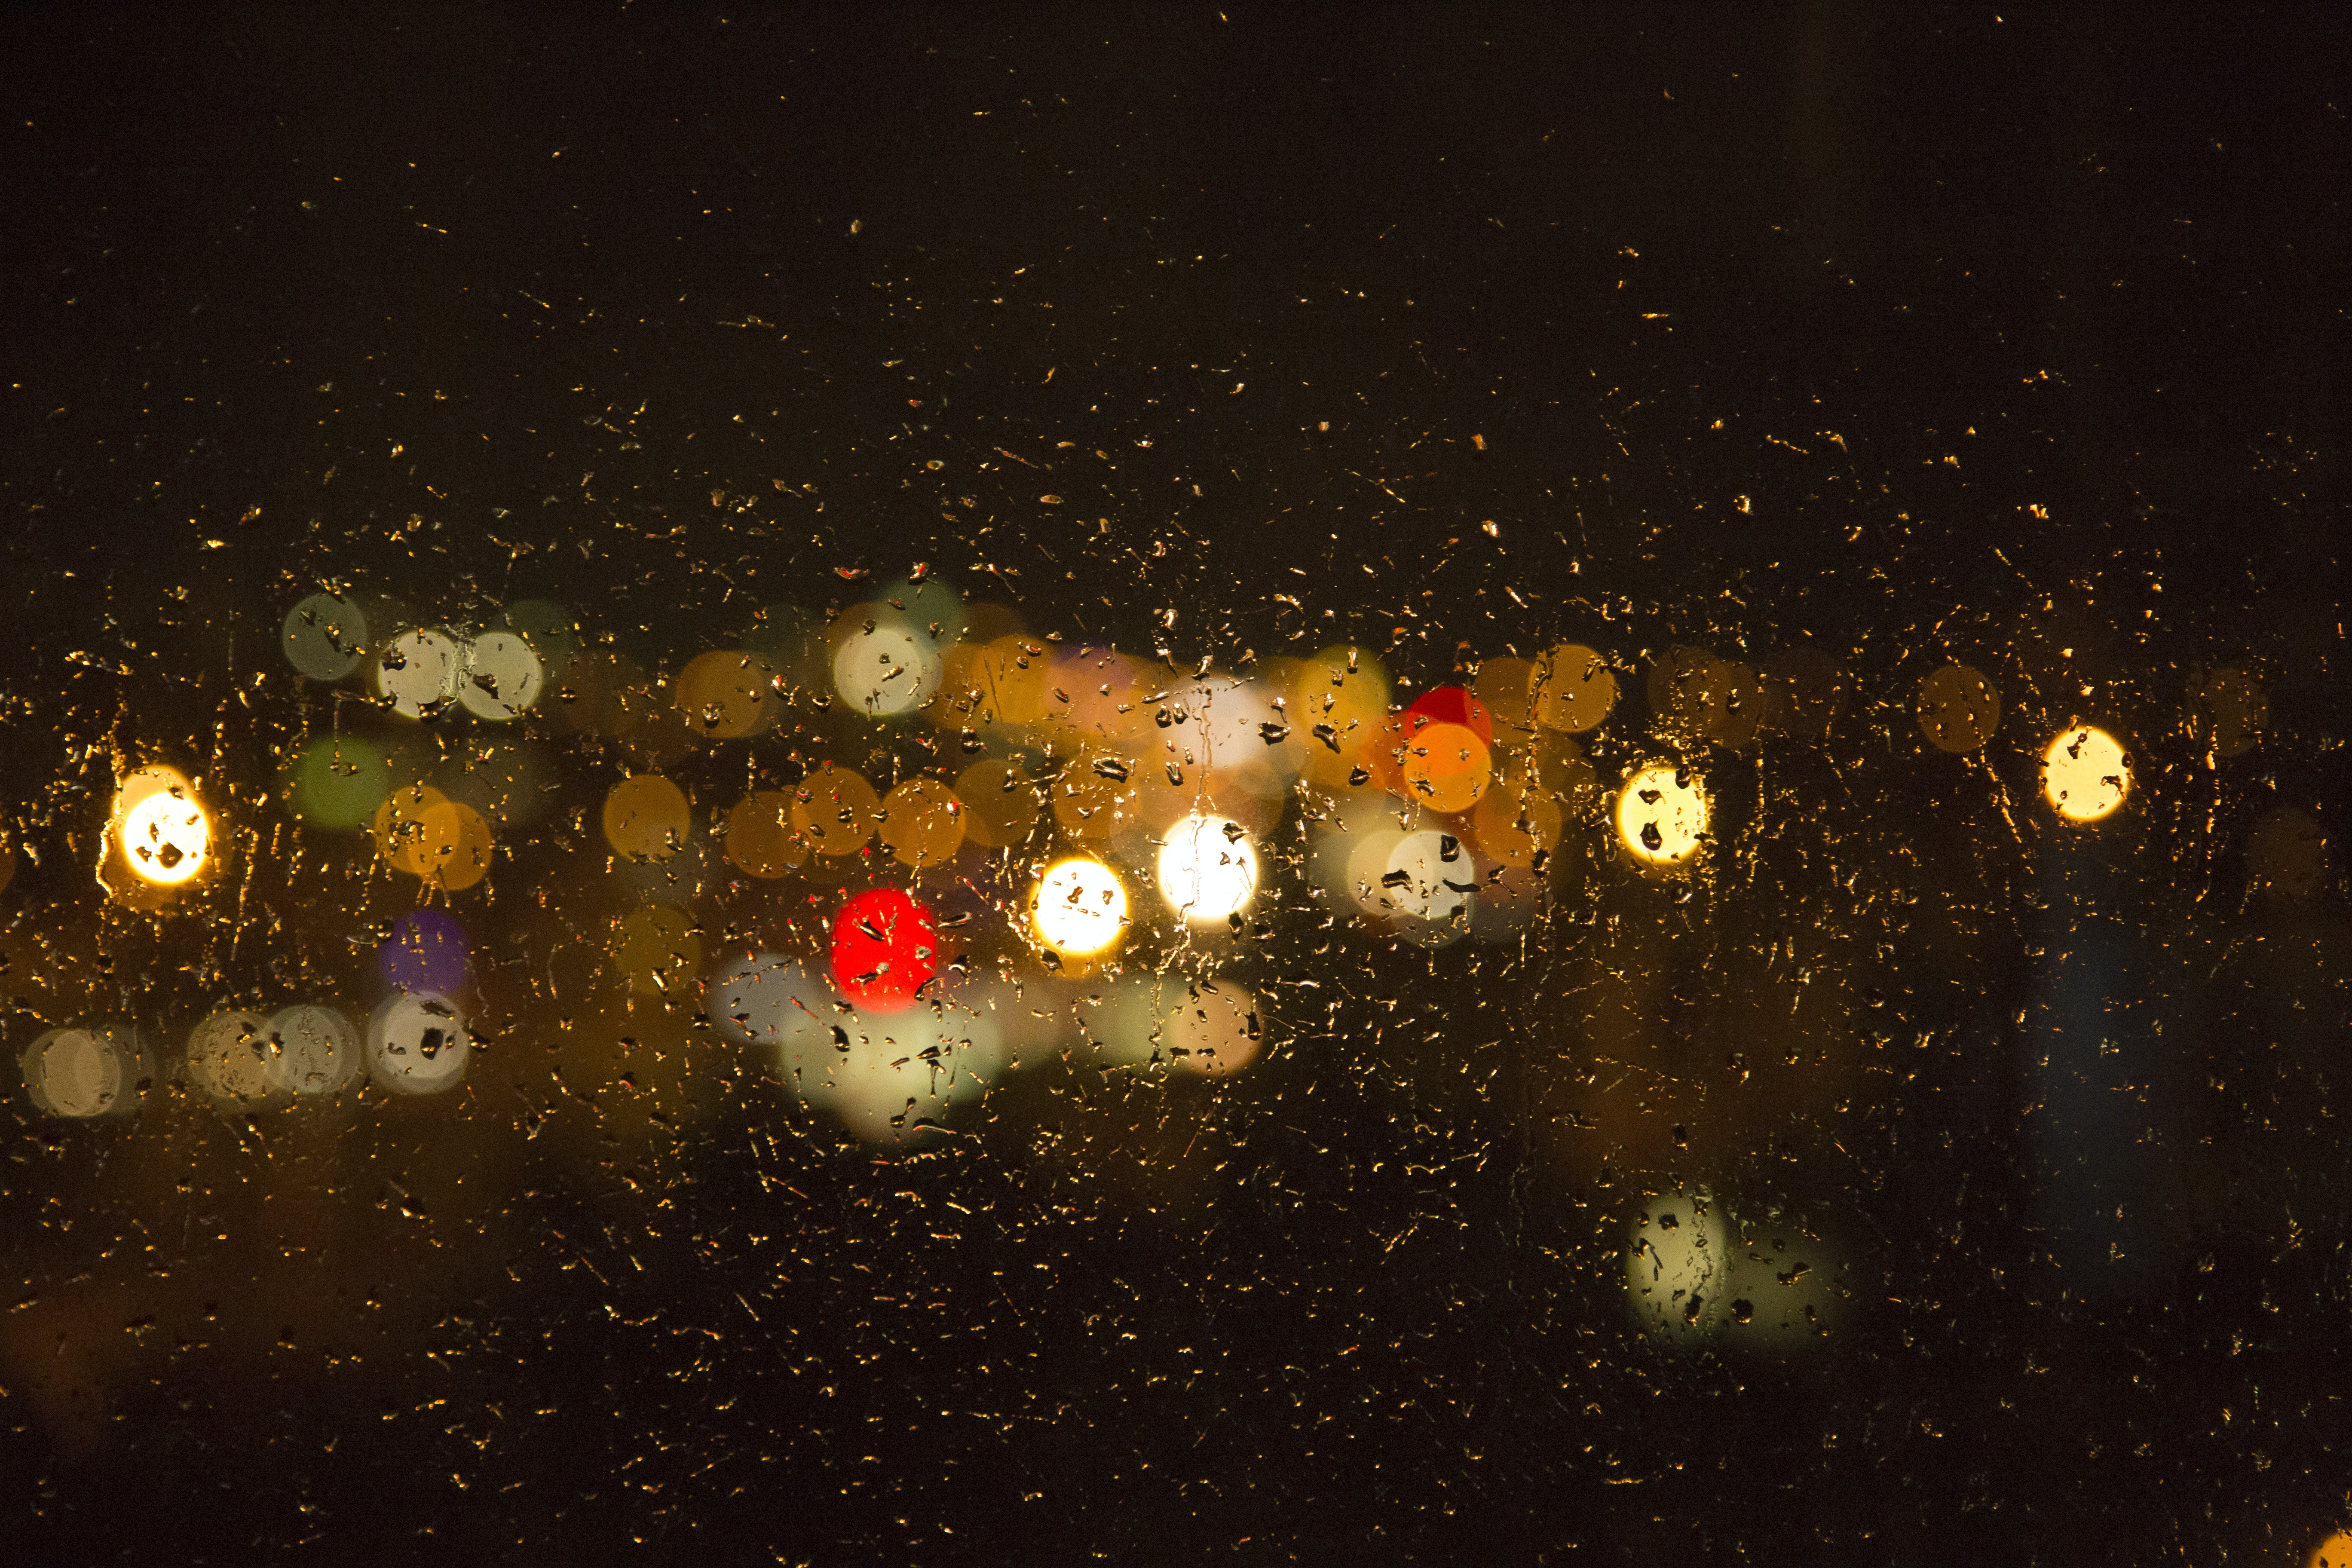 A blurry view of traffic at night, taken from behind a rain covered windshield.